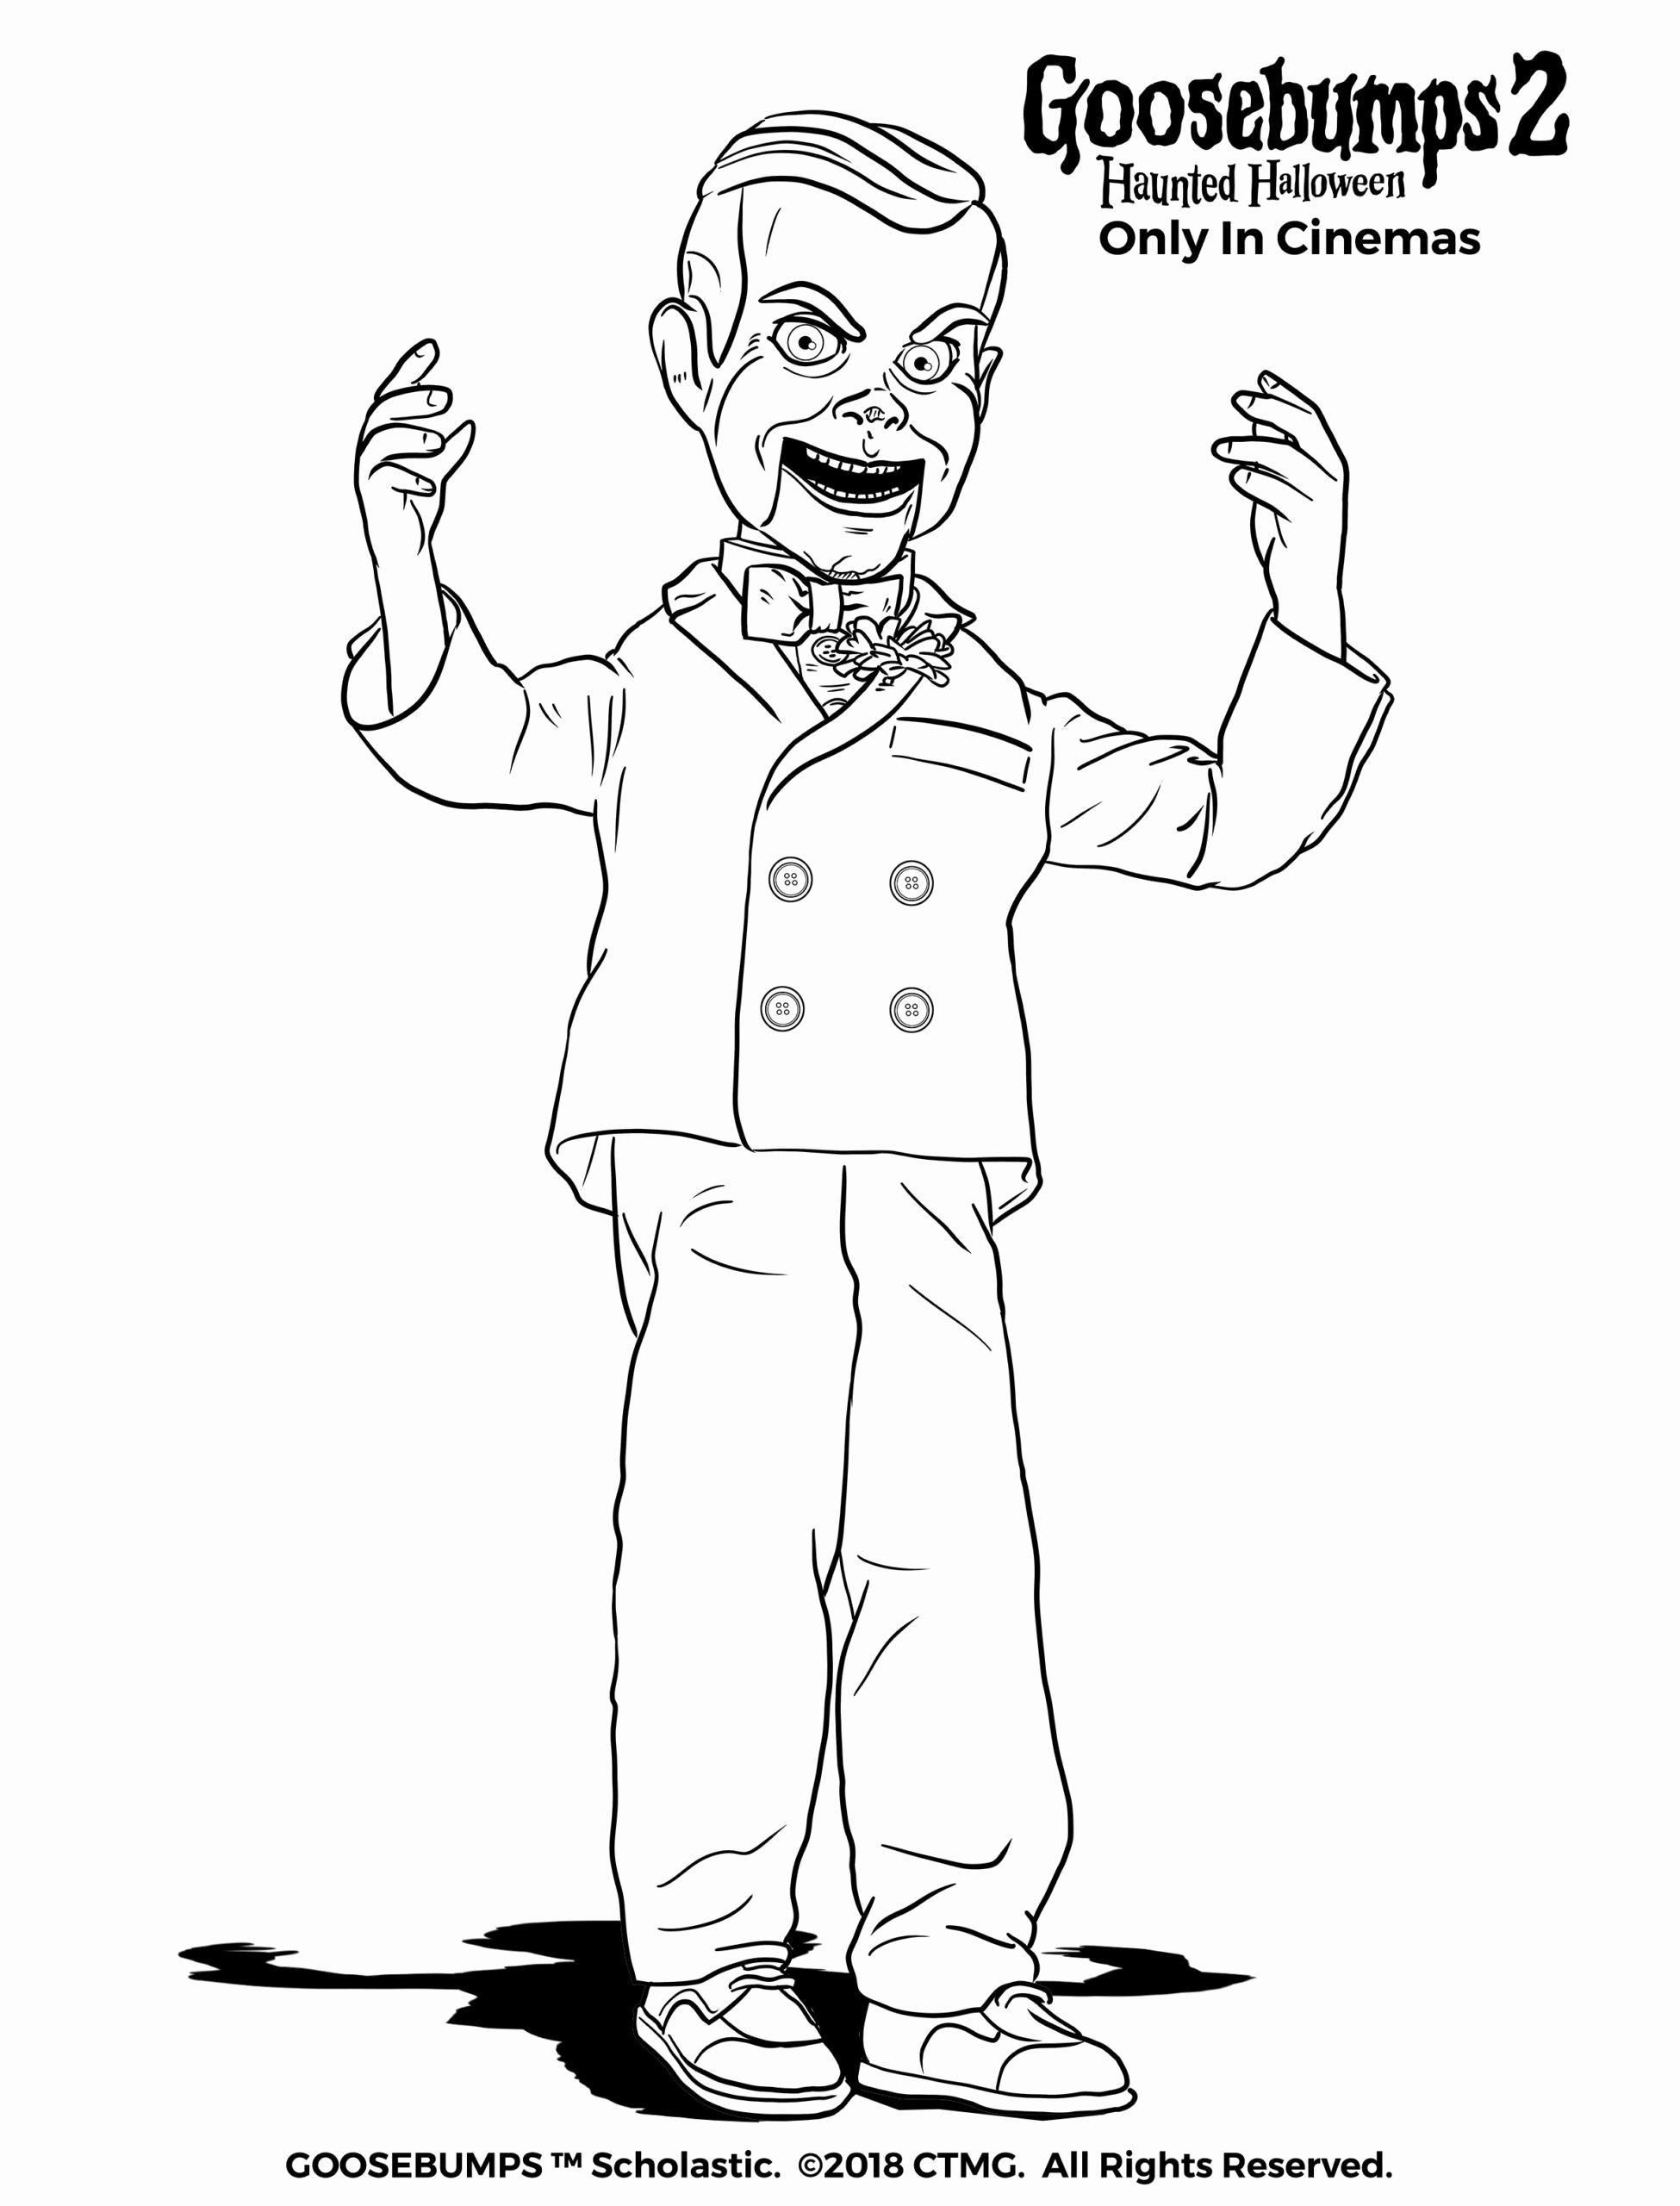 Hello Neighbor Coloring Pages : hello, neighbor, coloring, pages, Hello, Neighbor, Coloring, Beautiful, Pages, Slappy, Wants, Toddler, Book,, Pages,, Spiderman